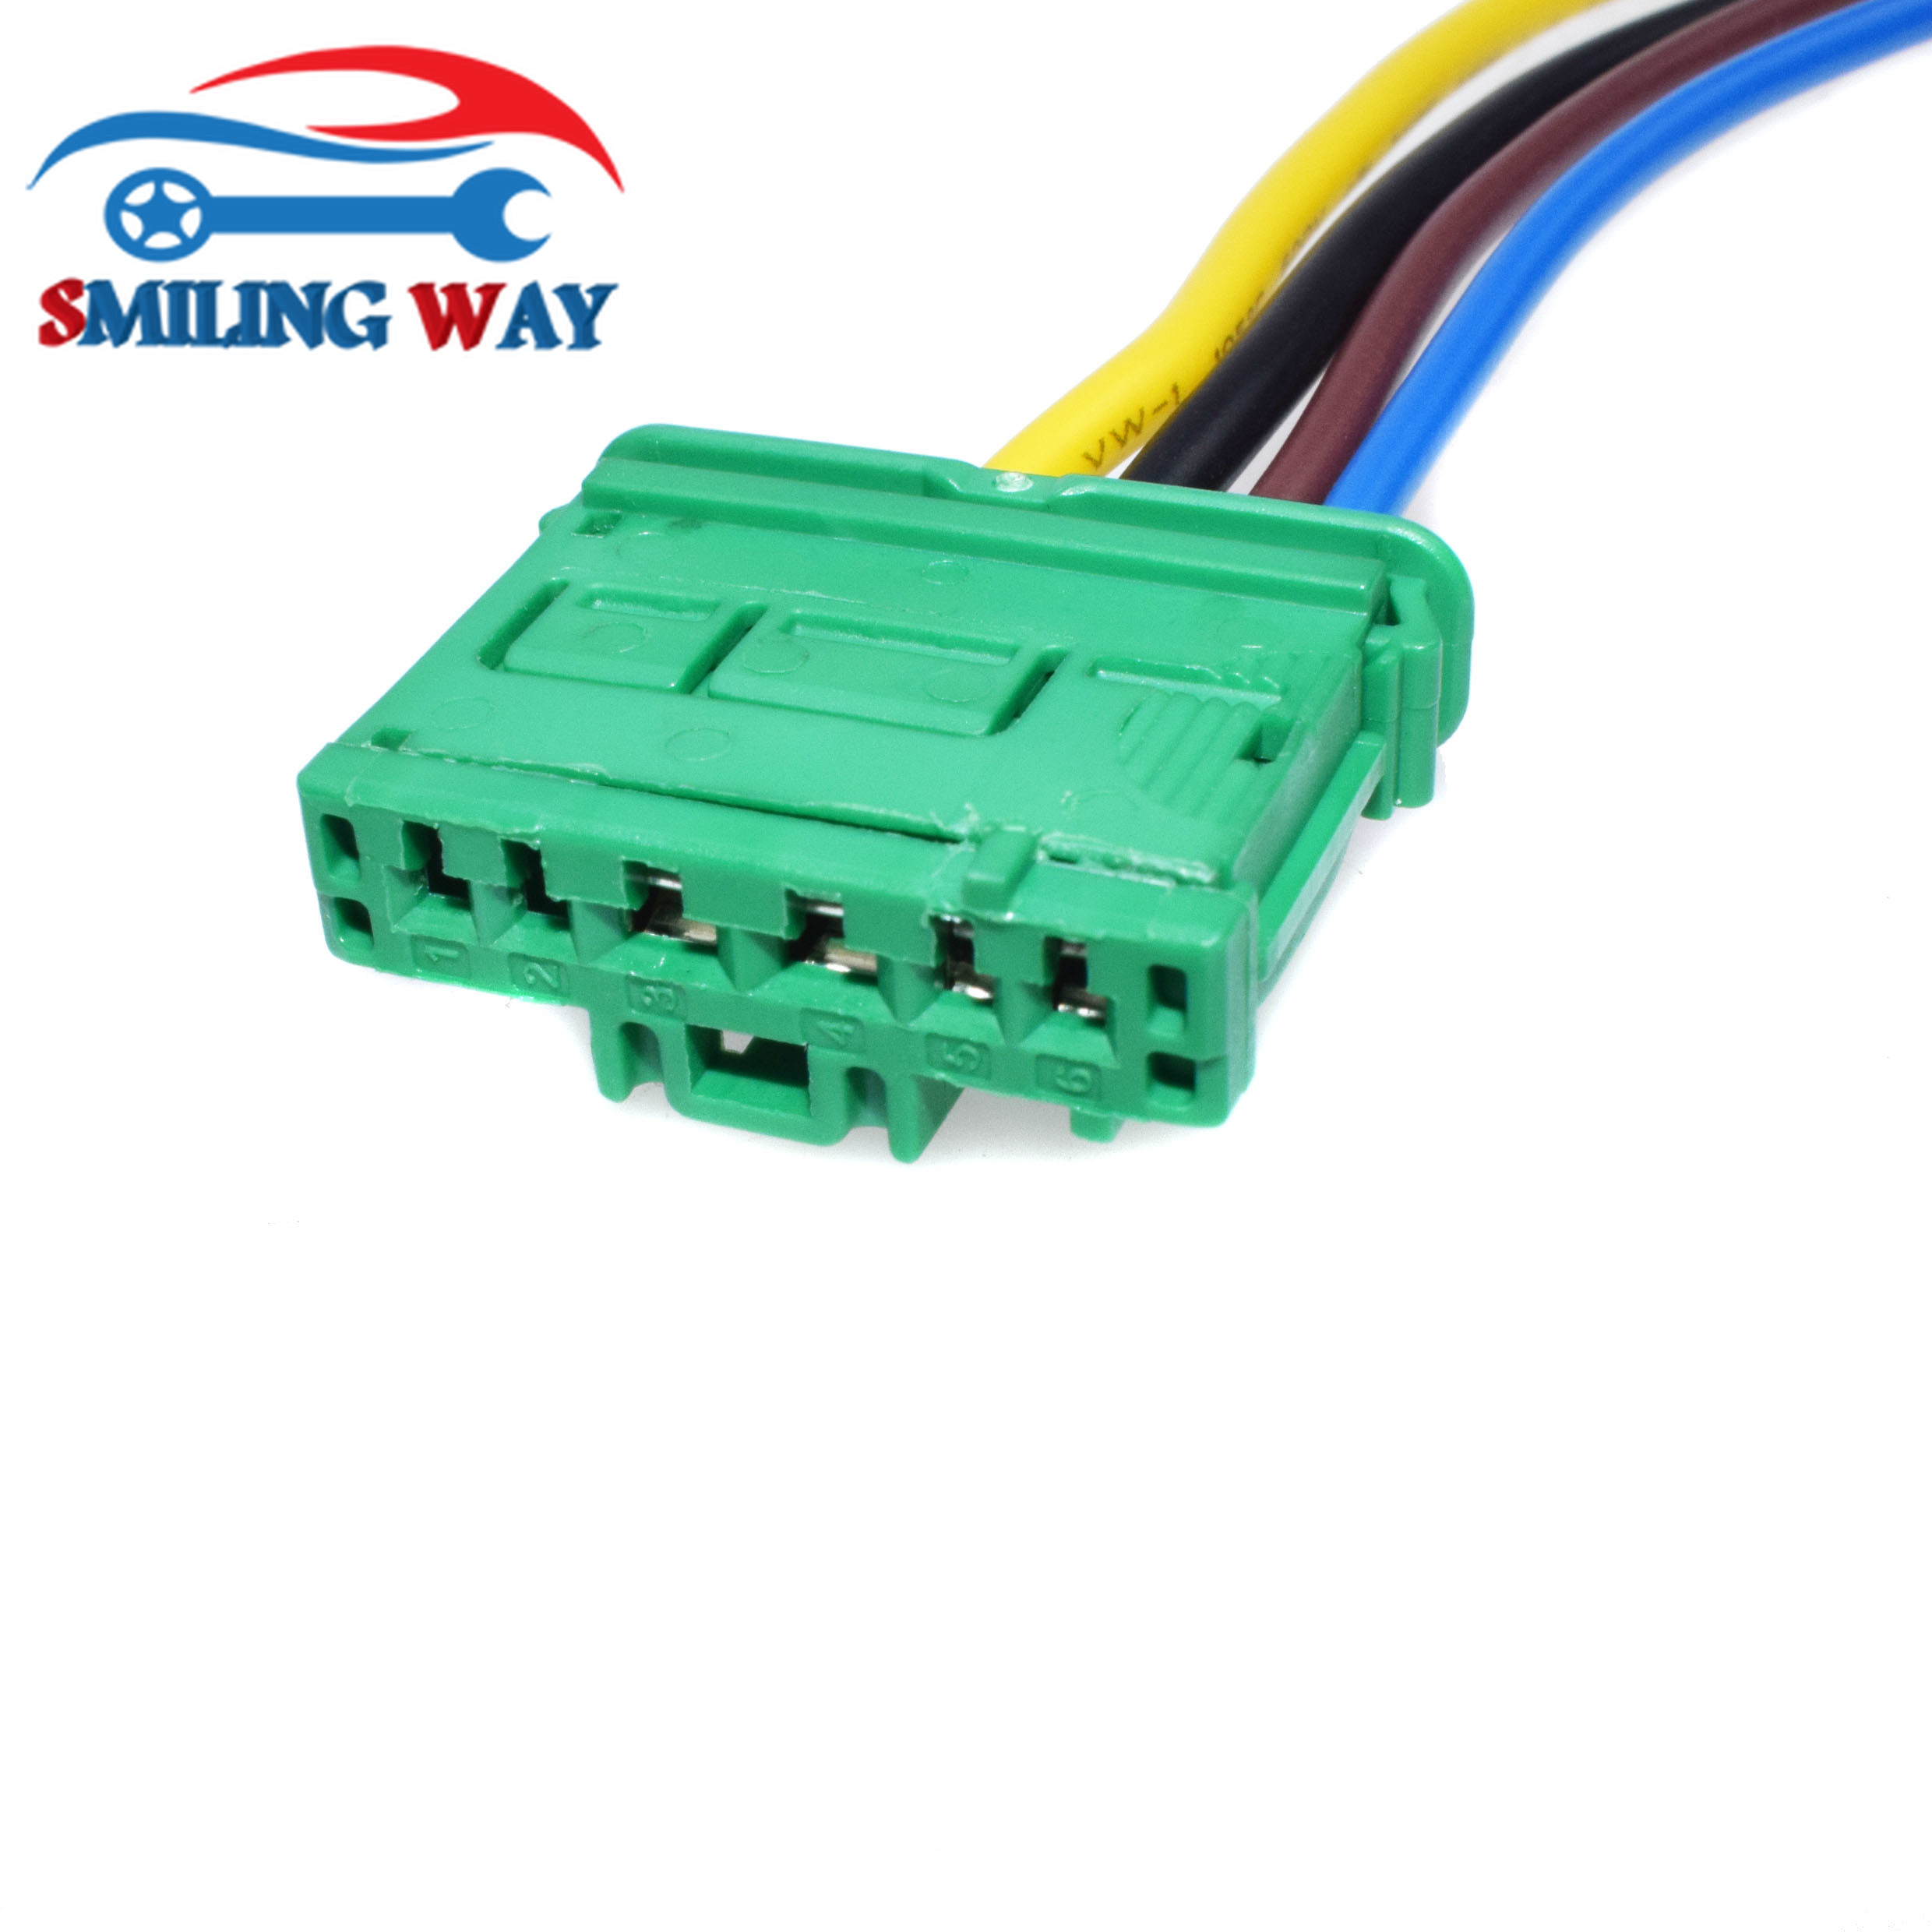 Smiling Way Heater Blower Resistor Wire Connector Plug For Peugeot Maf Wiring Citroen Renault C2 C3 C5 Twingo Megane 406 1007 207 607 In Motors From